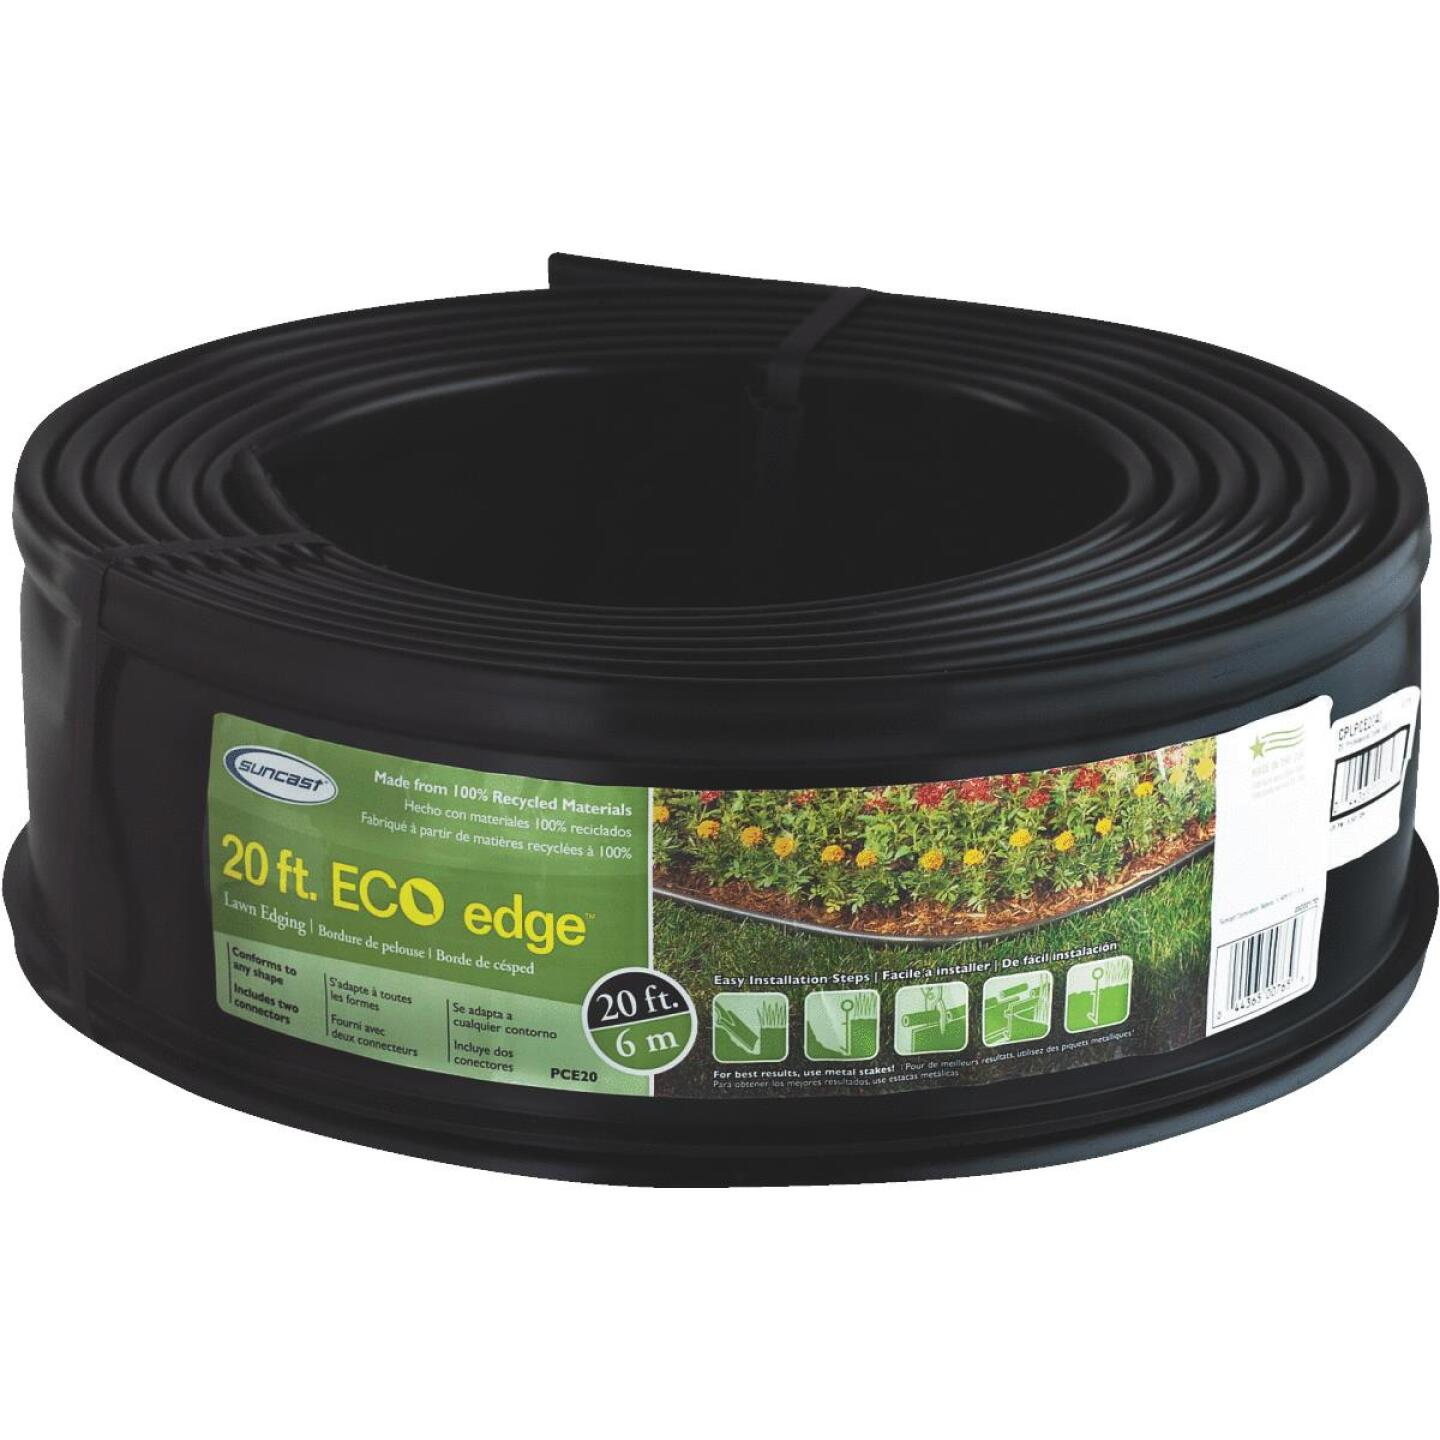 Suncast 5 In. H. x 20 Ft. L. Black Recycled Plastic Lawn Edging Image 1